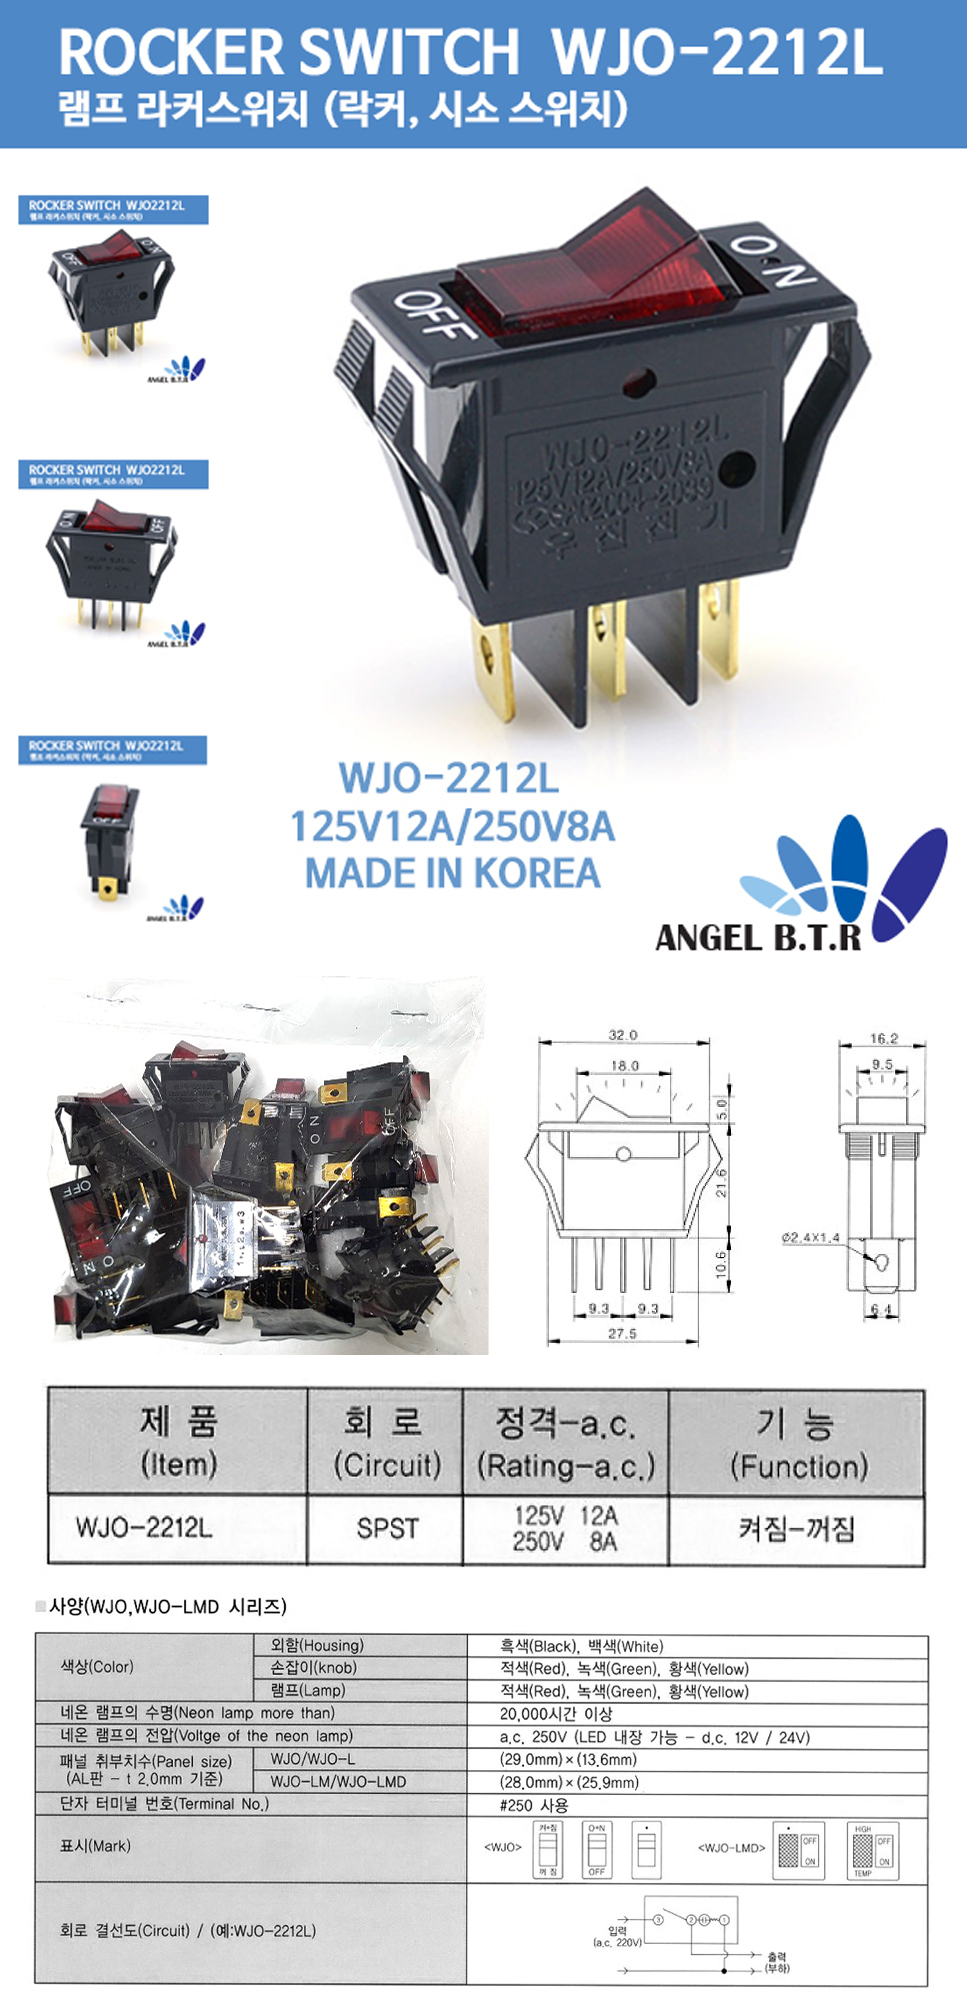 rocker-switch-wjo-2212l-5.jpg